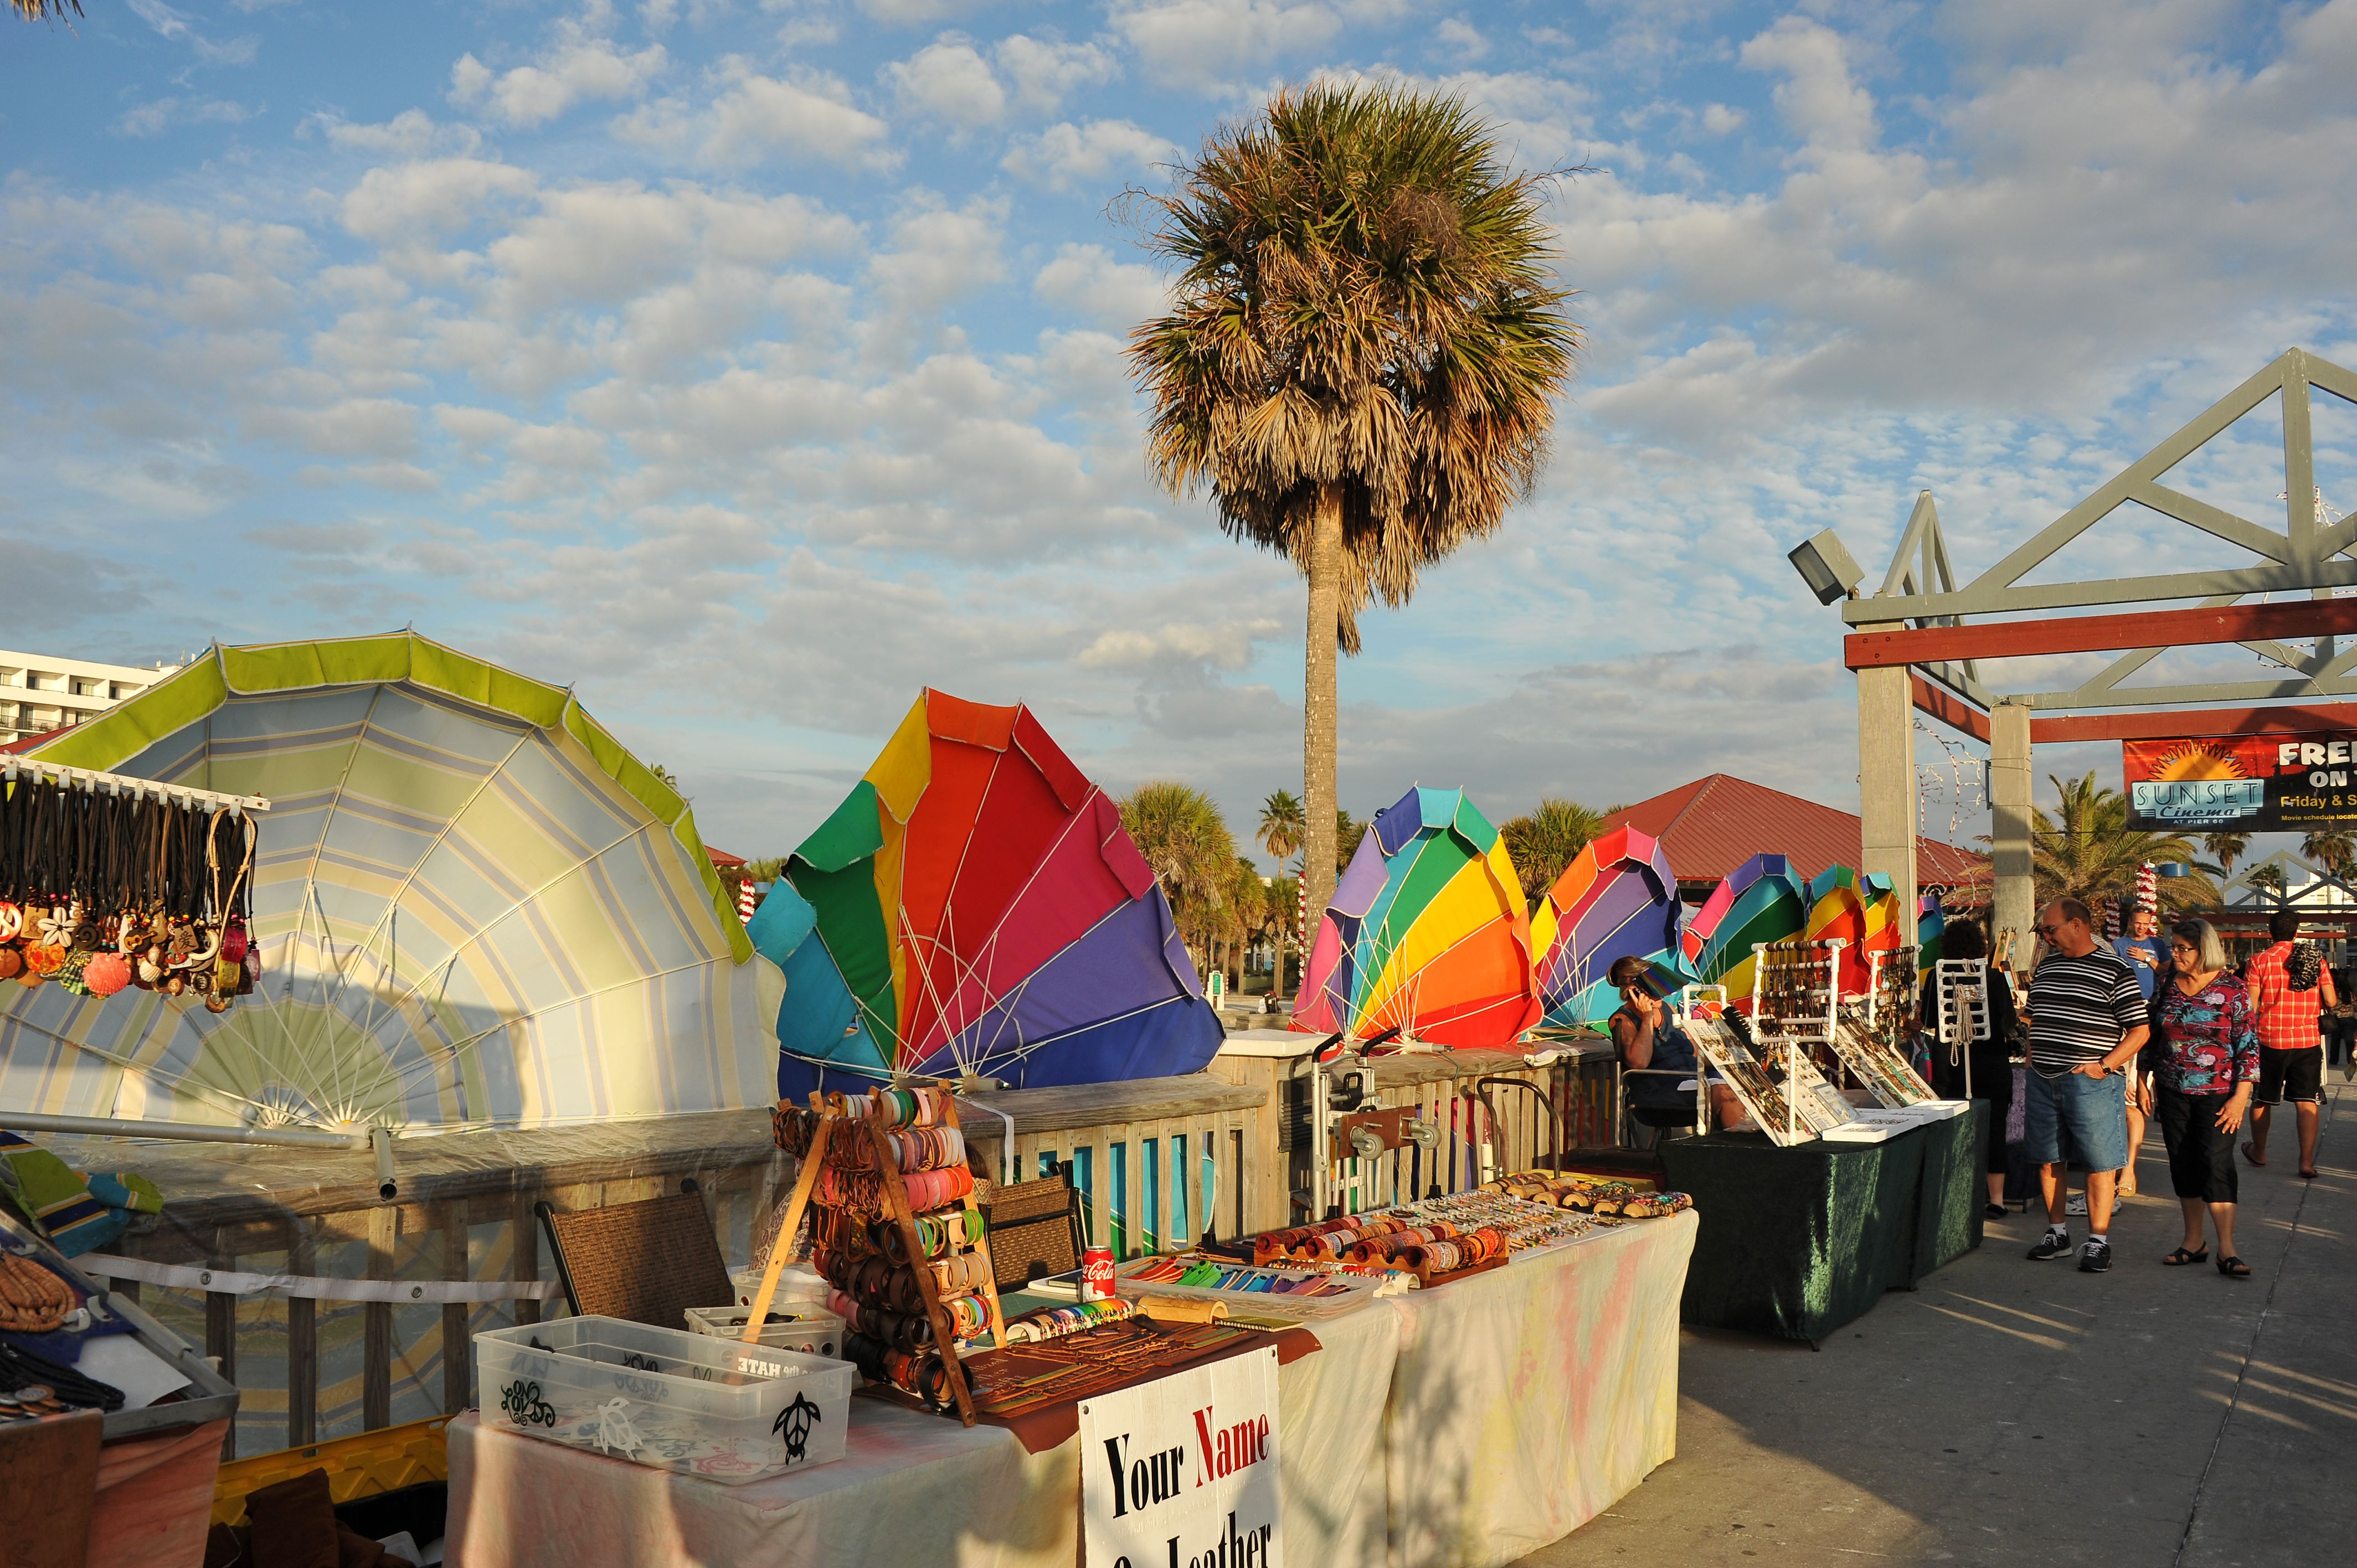 head to pier 60 park in clearwater beach nightly festival to